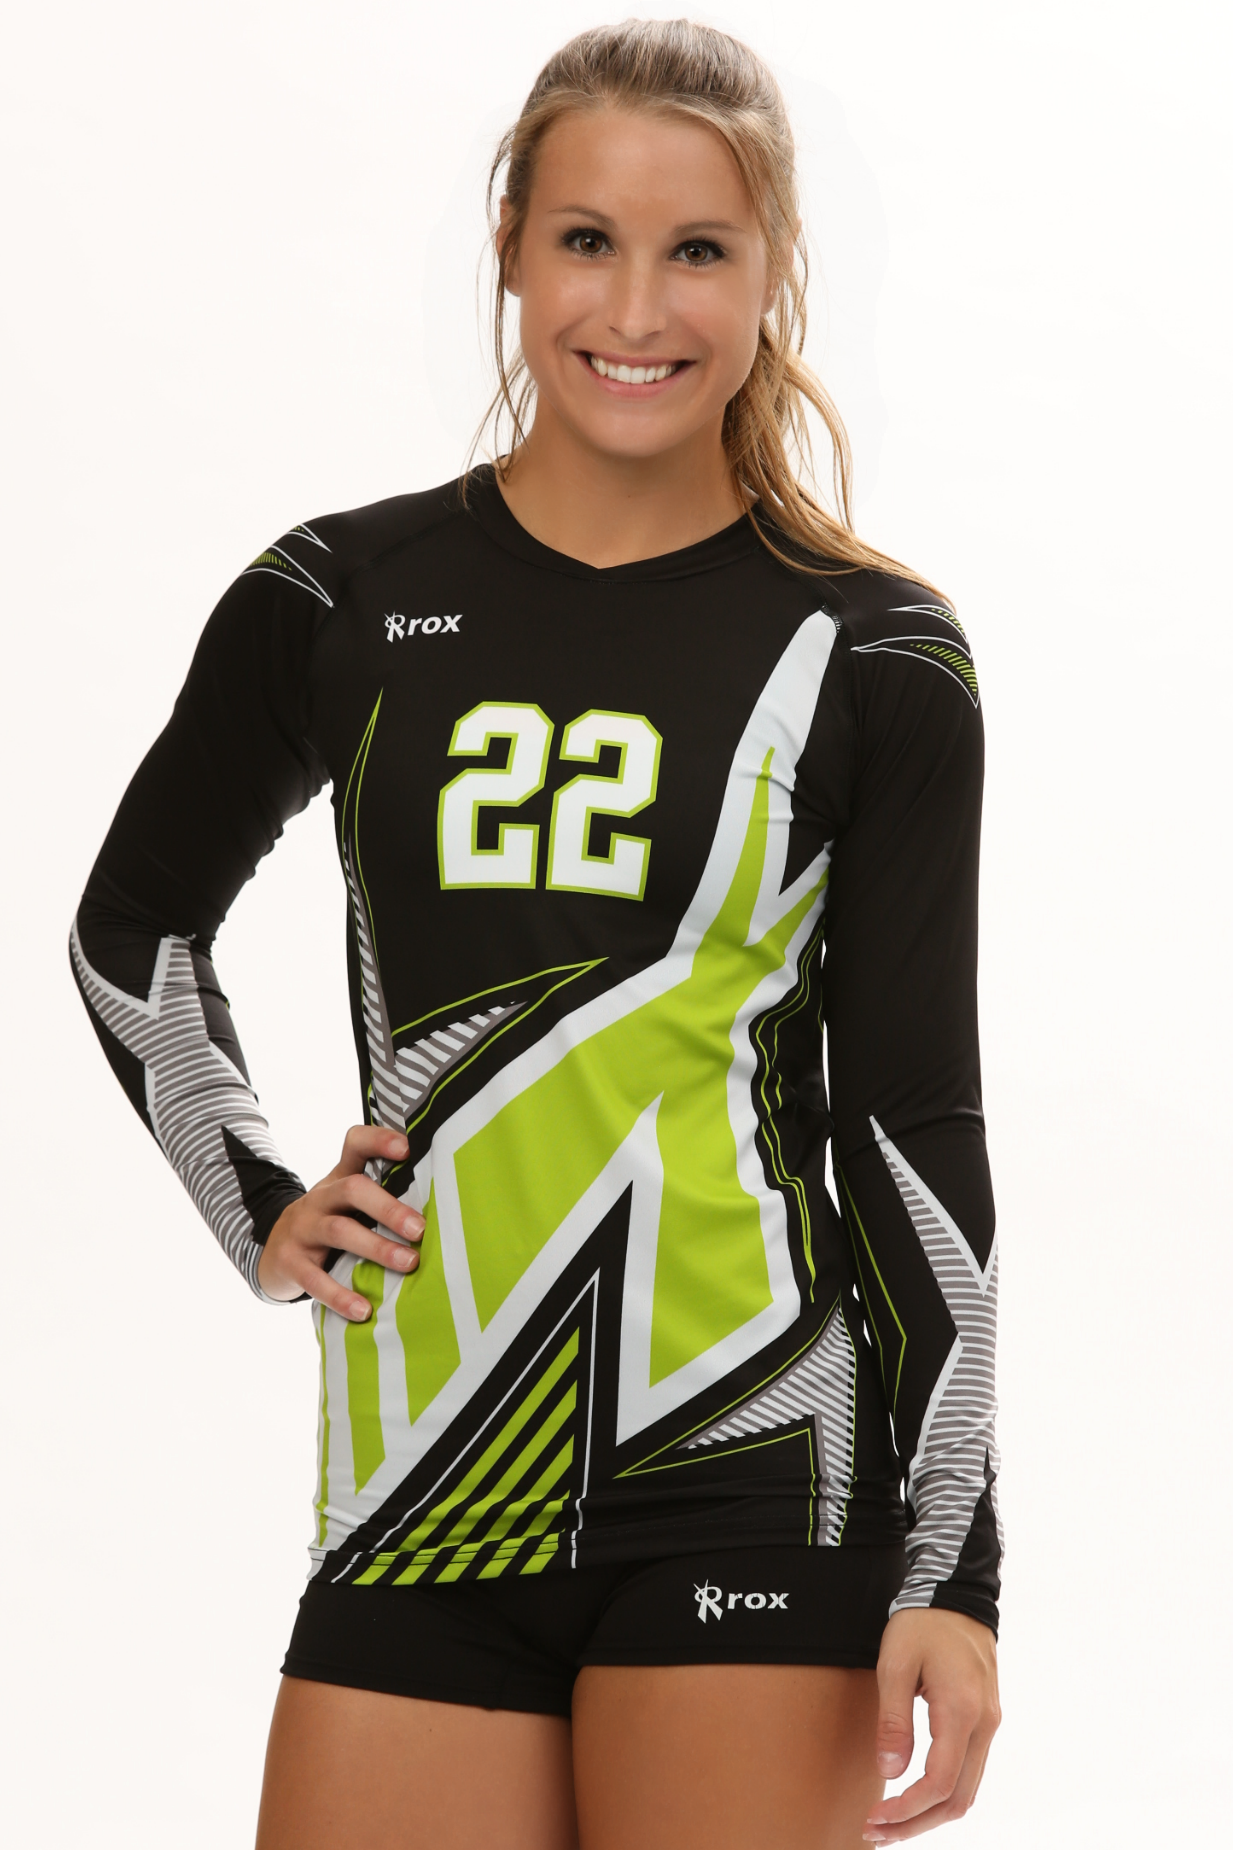 Xcelerator Team Rox 2016 Team Jersey Team Jersey Volleyball Uniforms Women